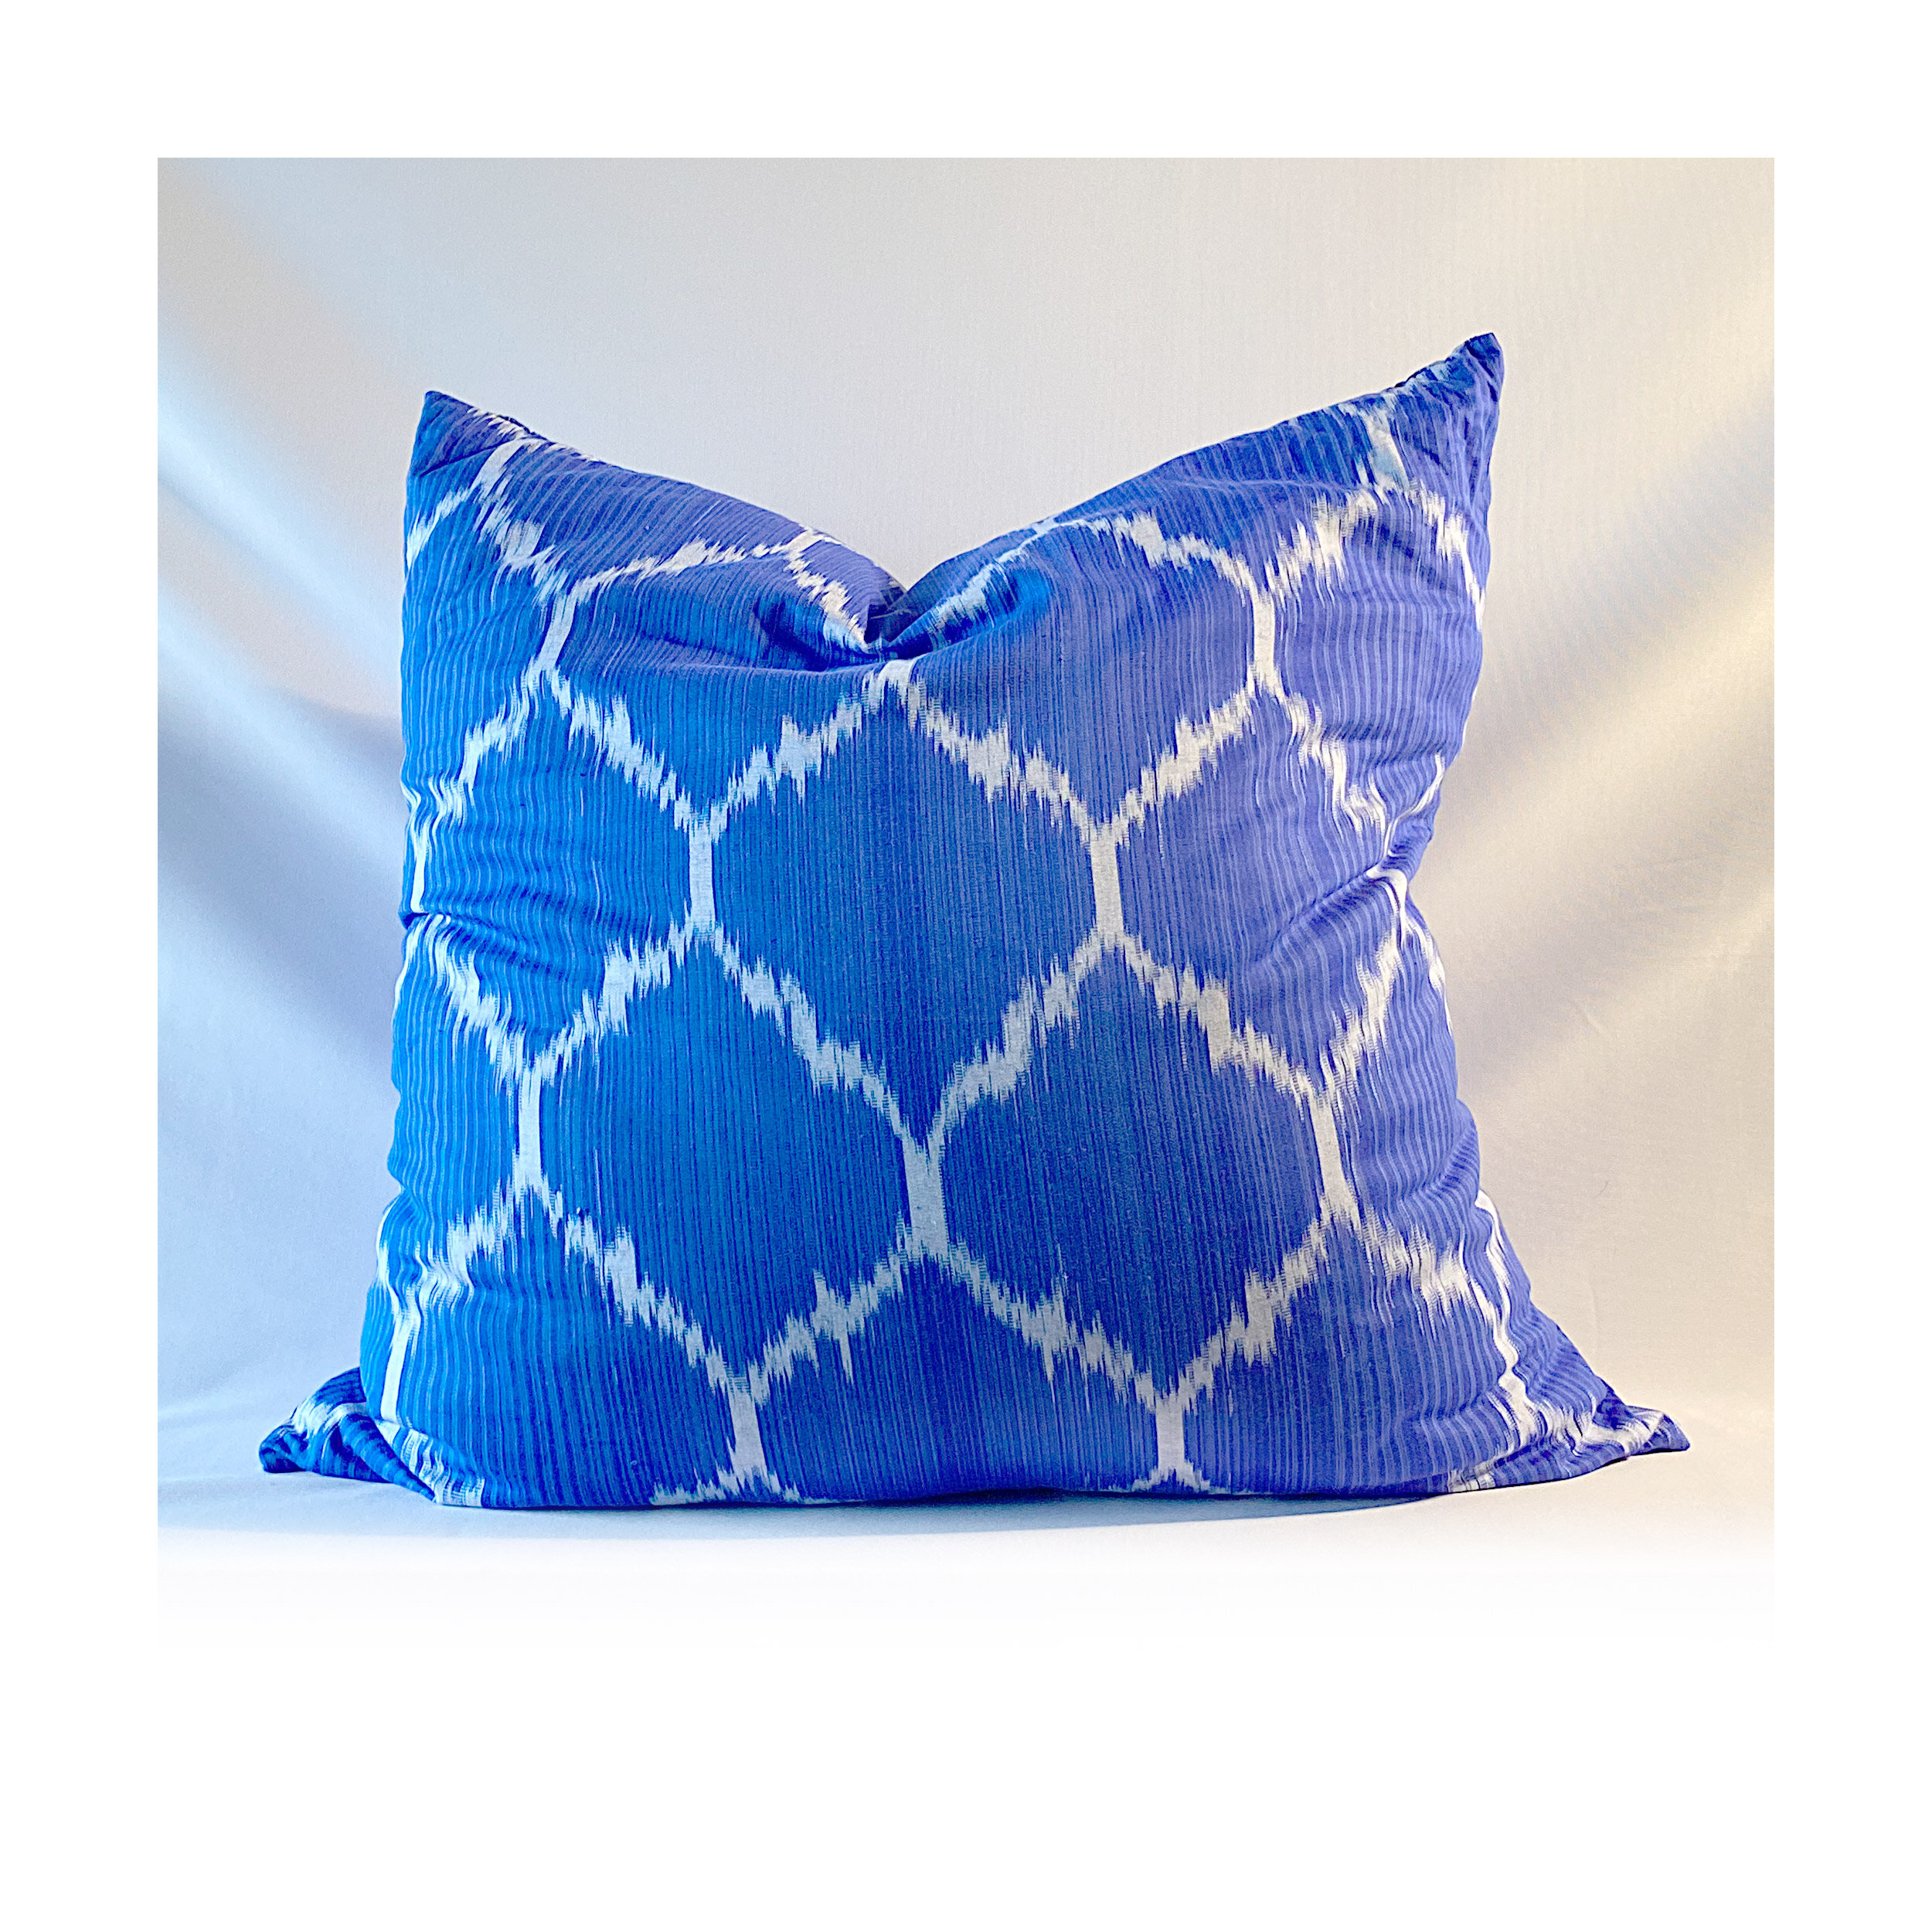 The Hinto Cotton Ikat Pillow Unexpected Designs